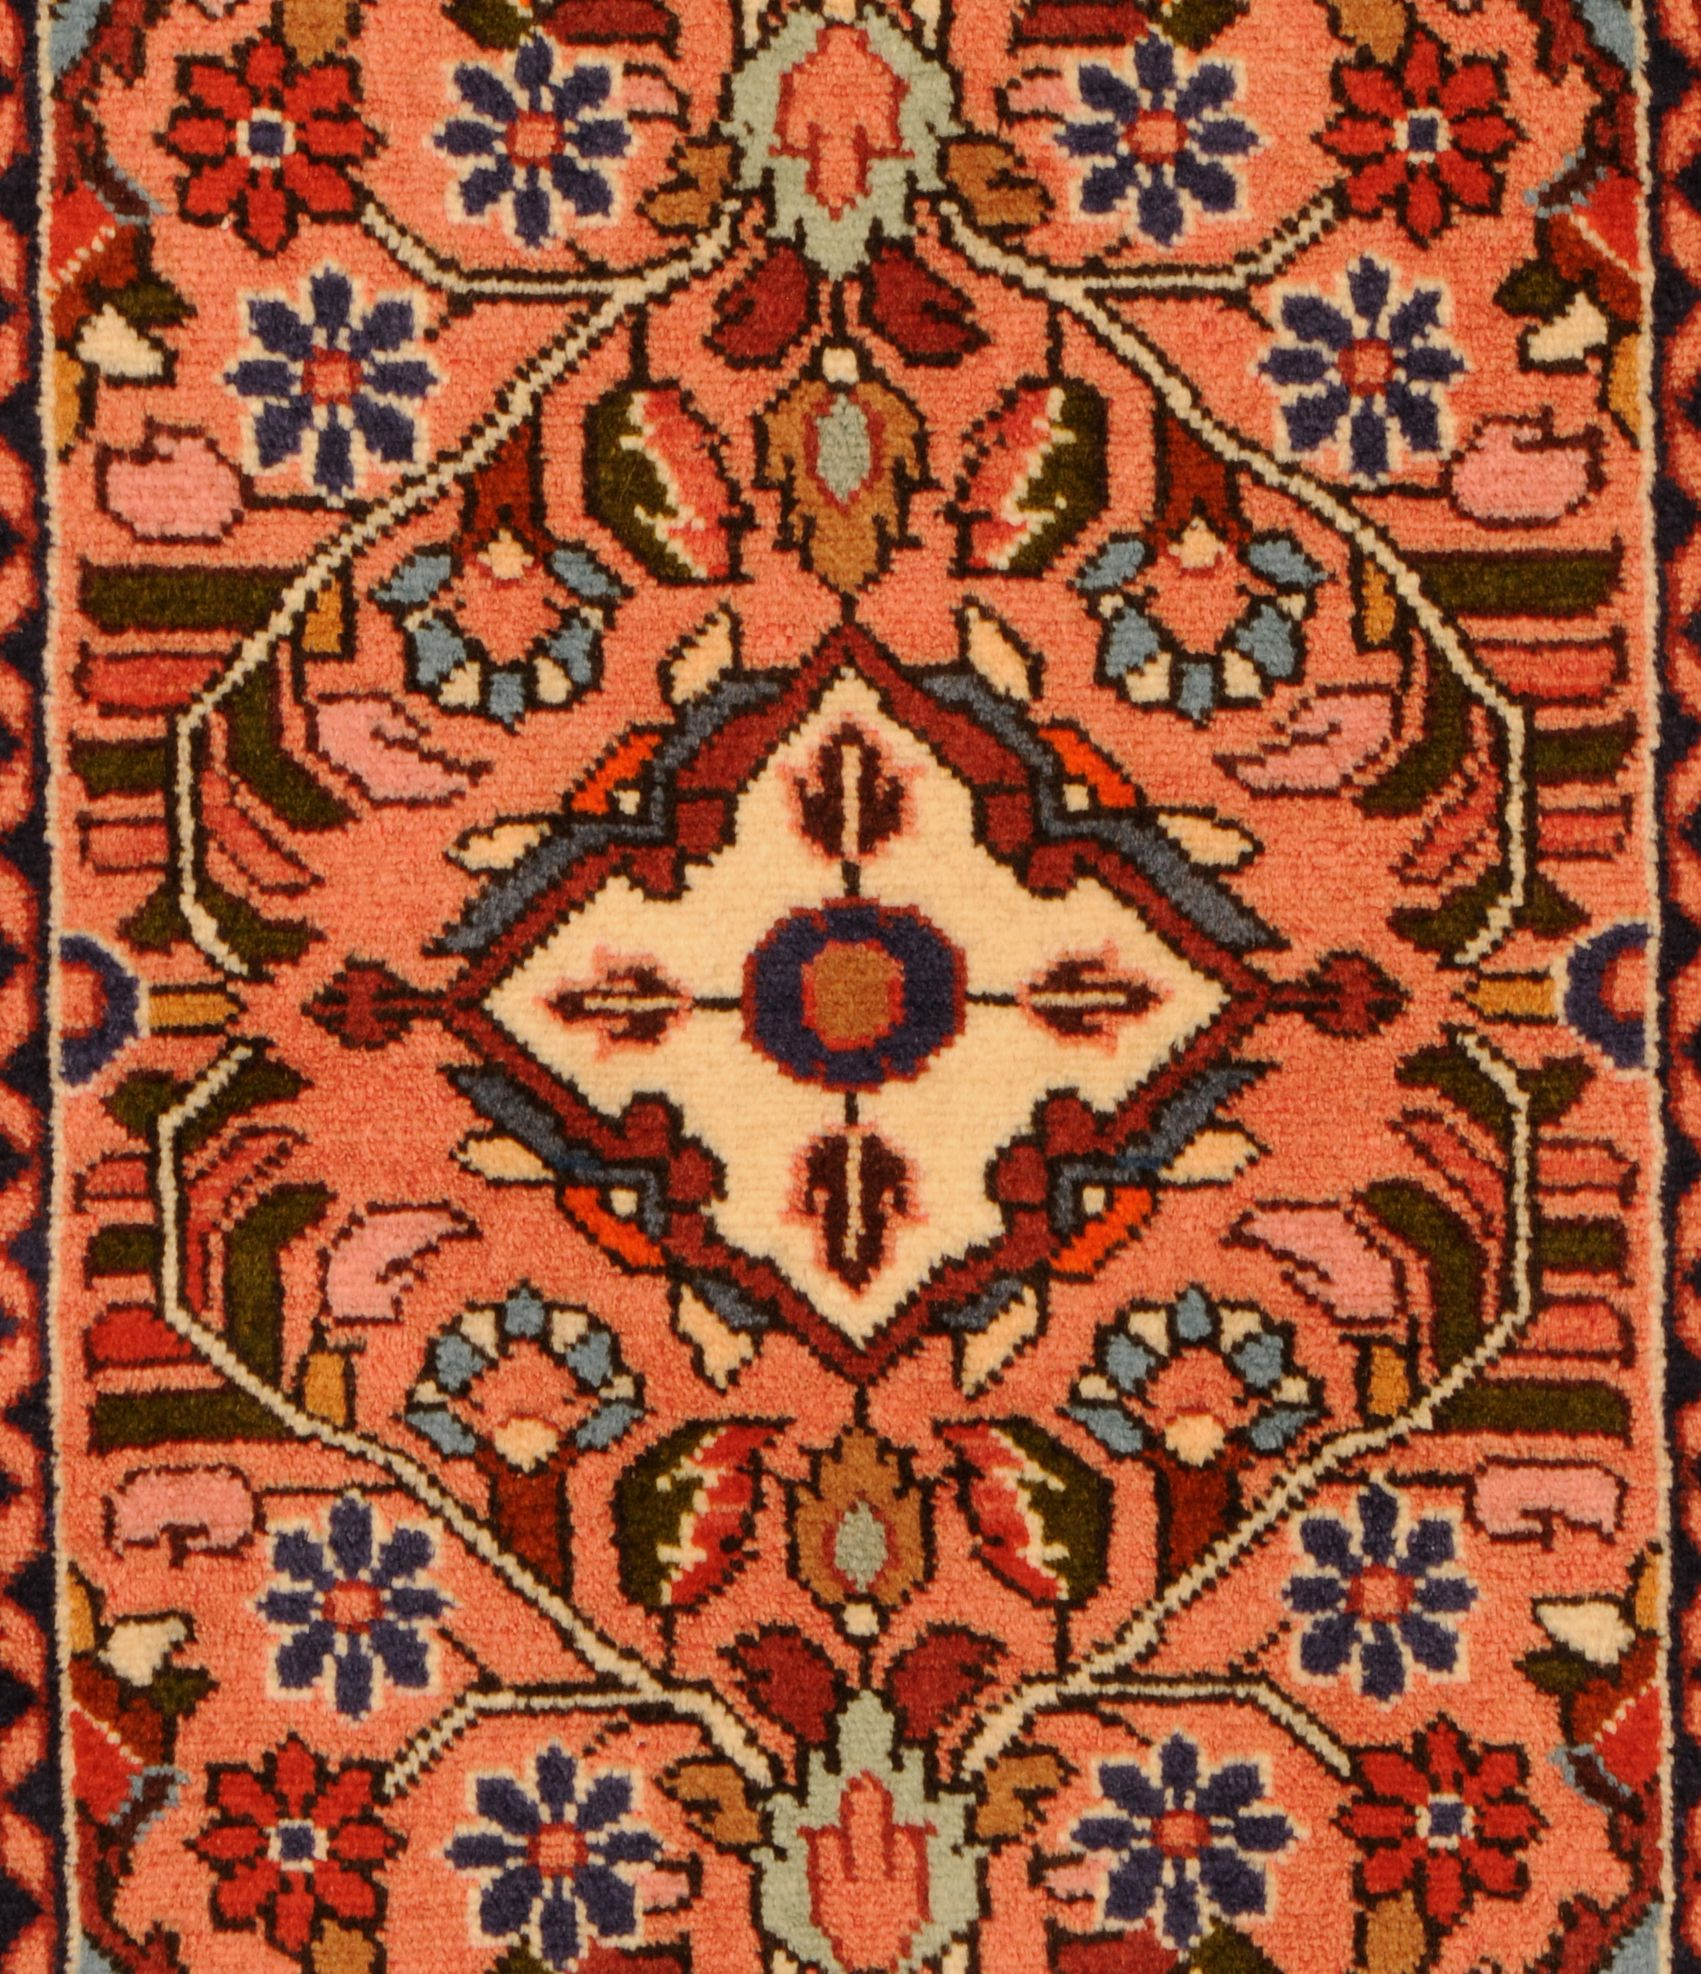 Rugs And Carpets Persian Carpet Patterns Google Search Iran Pinterest